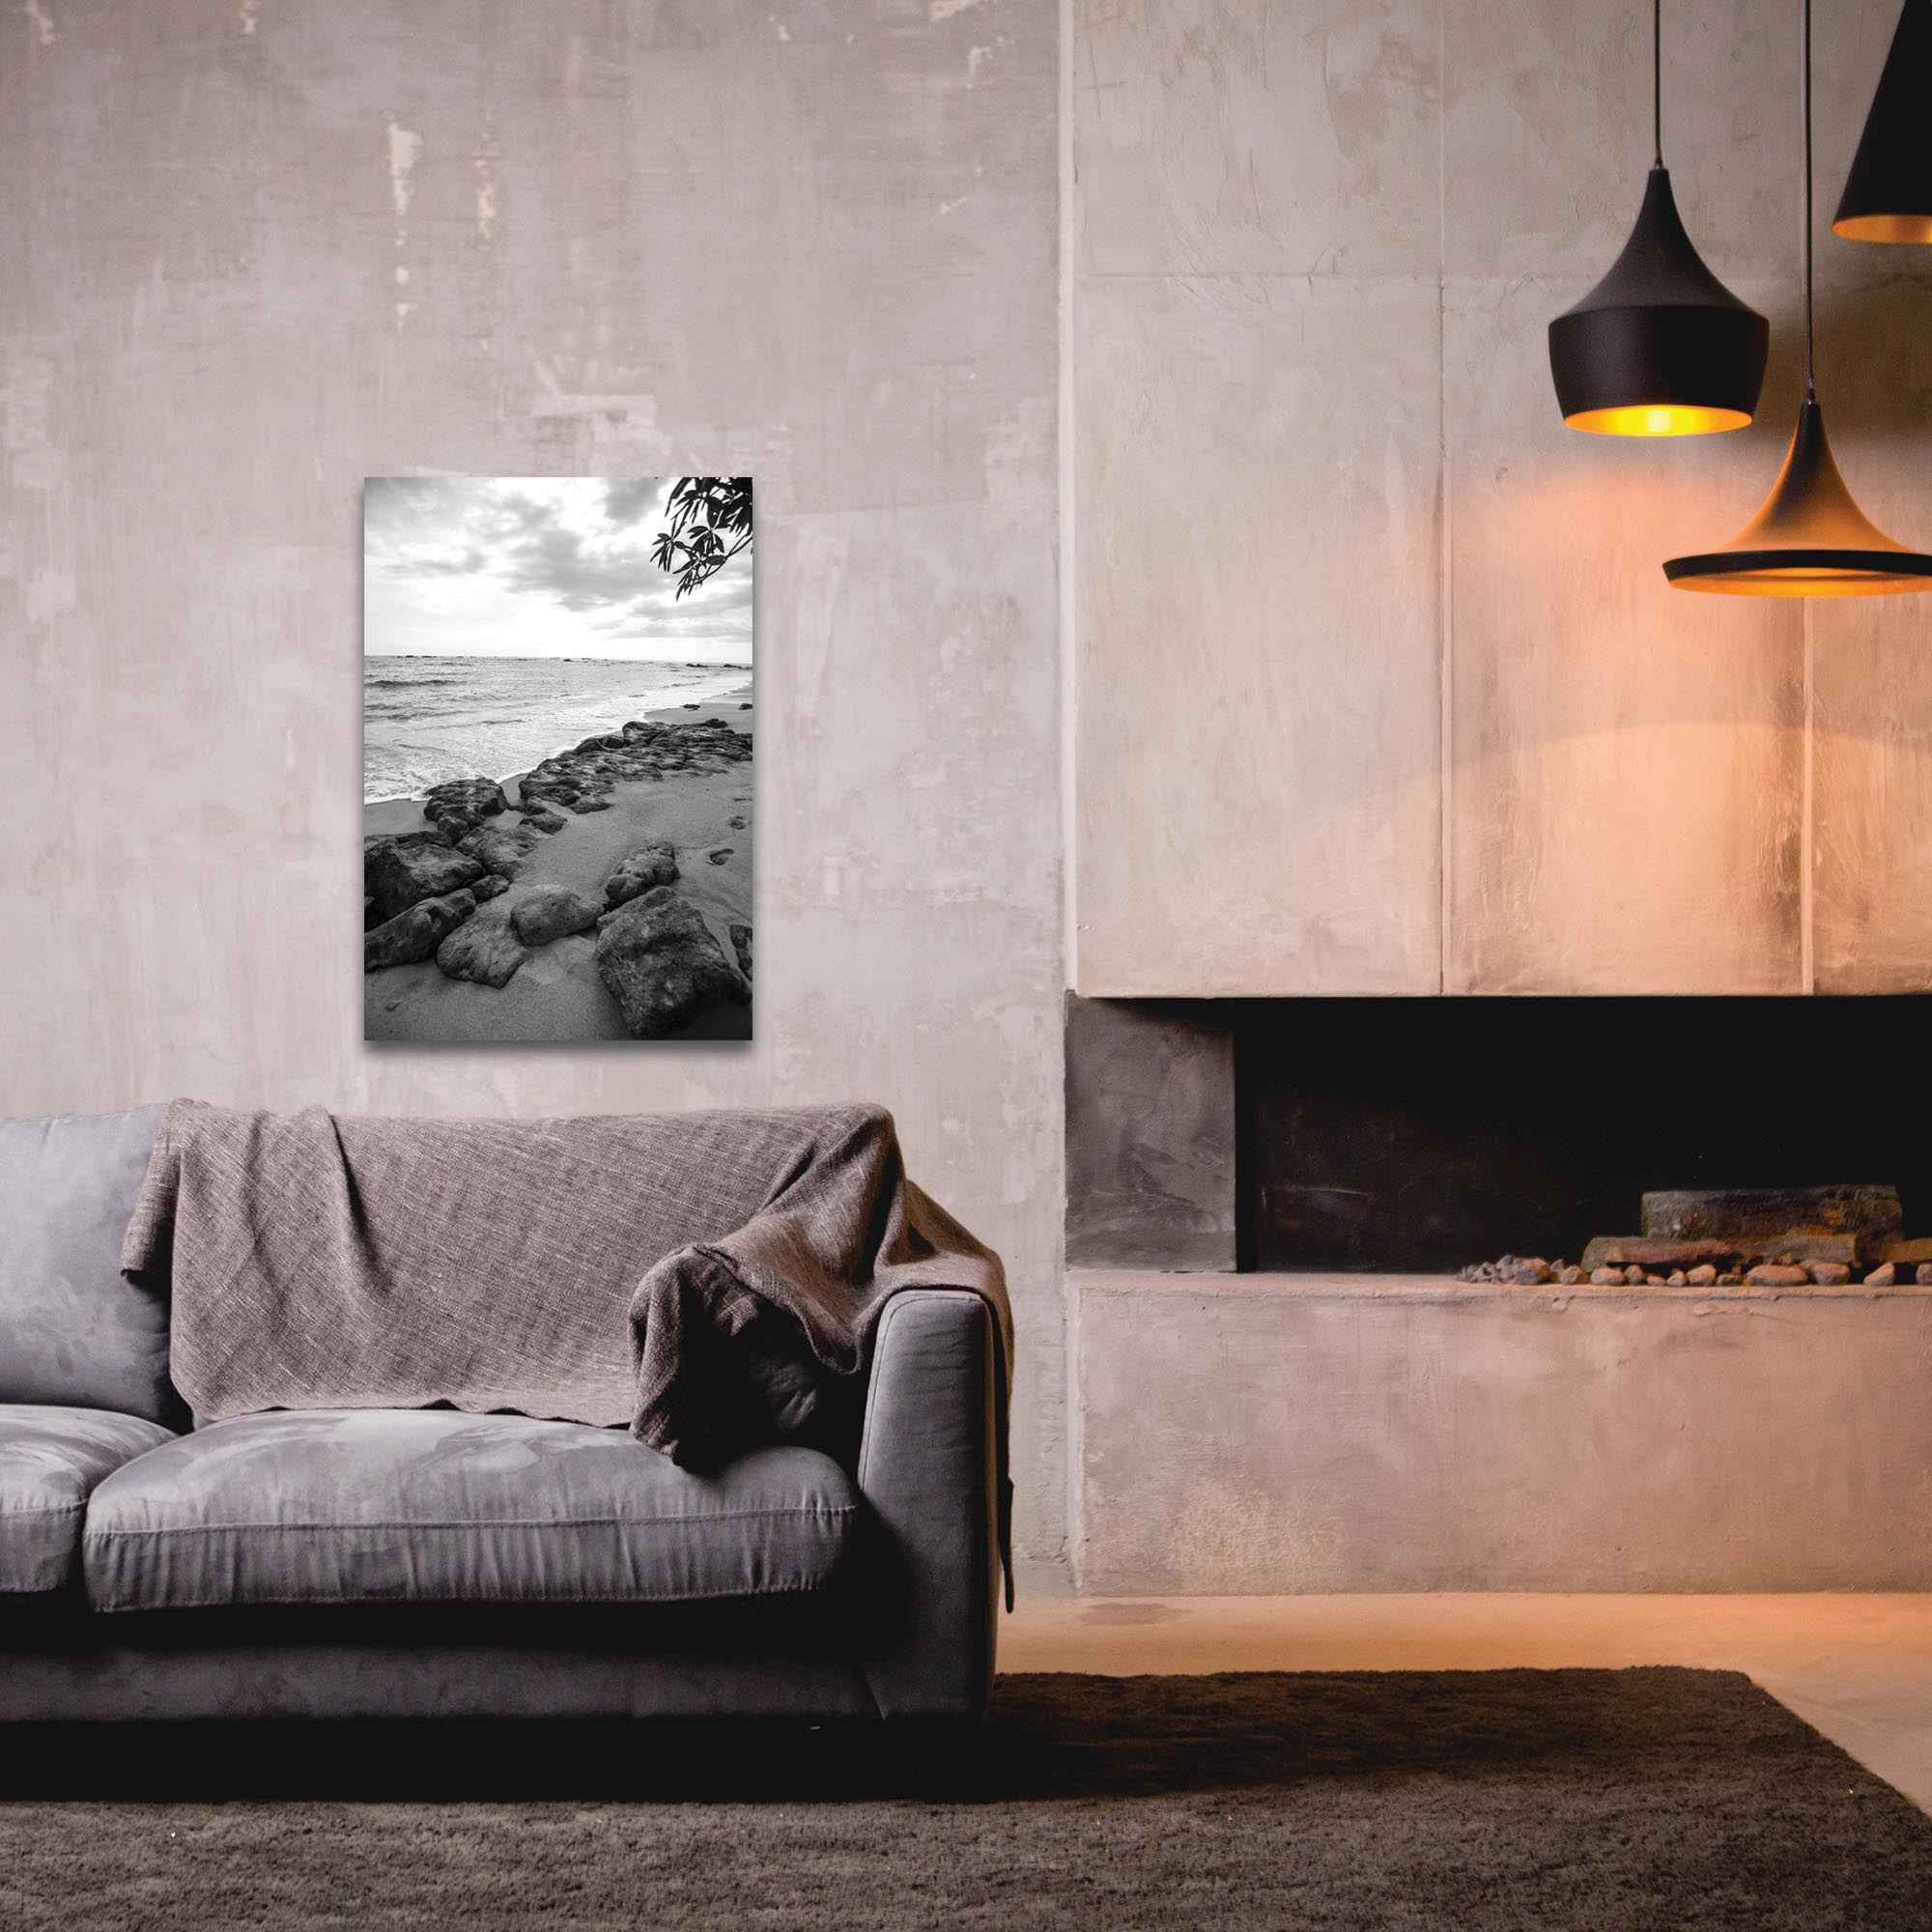 Black & White Photography 'The Coastline' - Coastal Art on Metal or Plexiglass - Lifestyle View